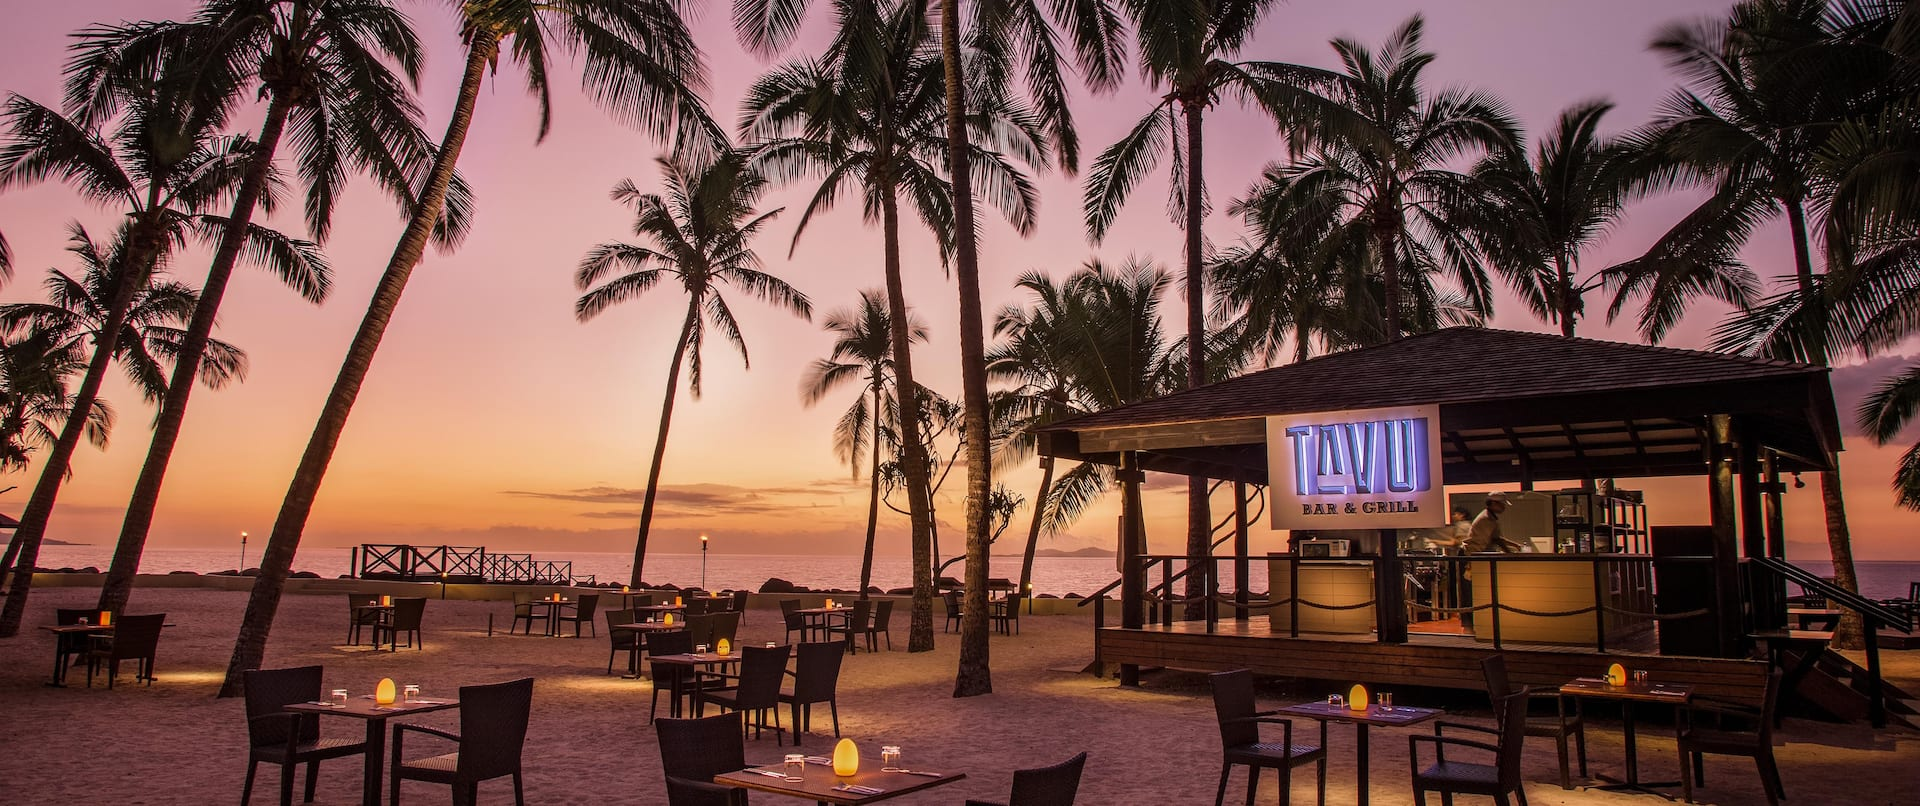 Sunset View of Candlelit Tables and Chairs Surrounded by Sand and Palm Trees at Tavu Grill